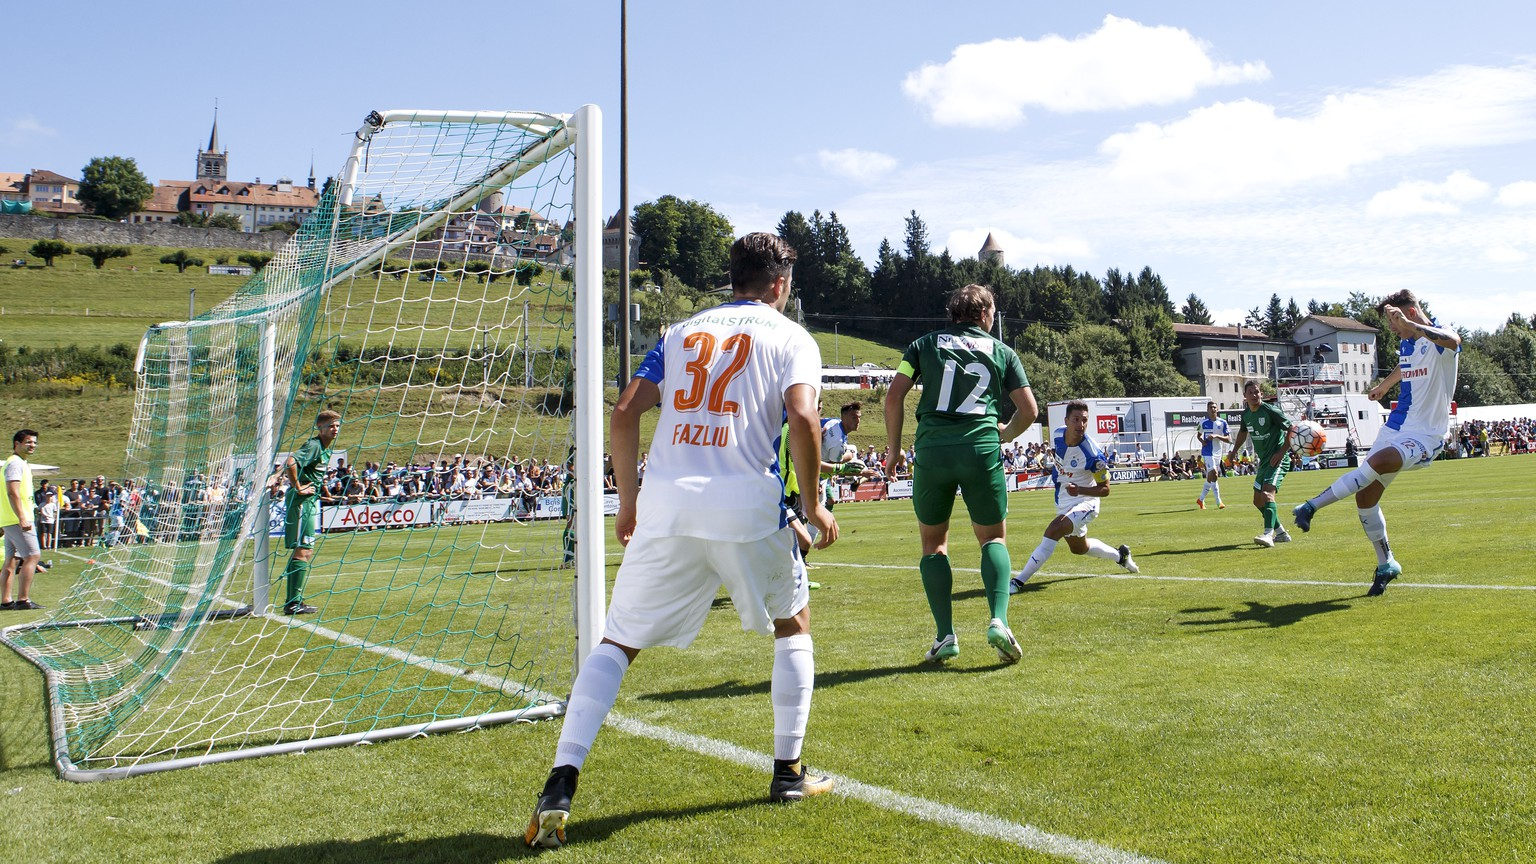 Grasshopper's defender Cedric Zesiger, 2nd right, shoots the ball, during the Swiss Cup Round of 64 between CS Romontois and Grasshopper Club Zuerich, at the stade du Glaney stadium, in Romont, Switzerland, Sunday, August 13, 2017. (KEYSTONE/Salvatore Di Nolfi)